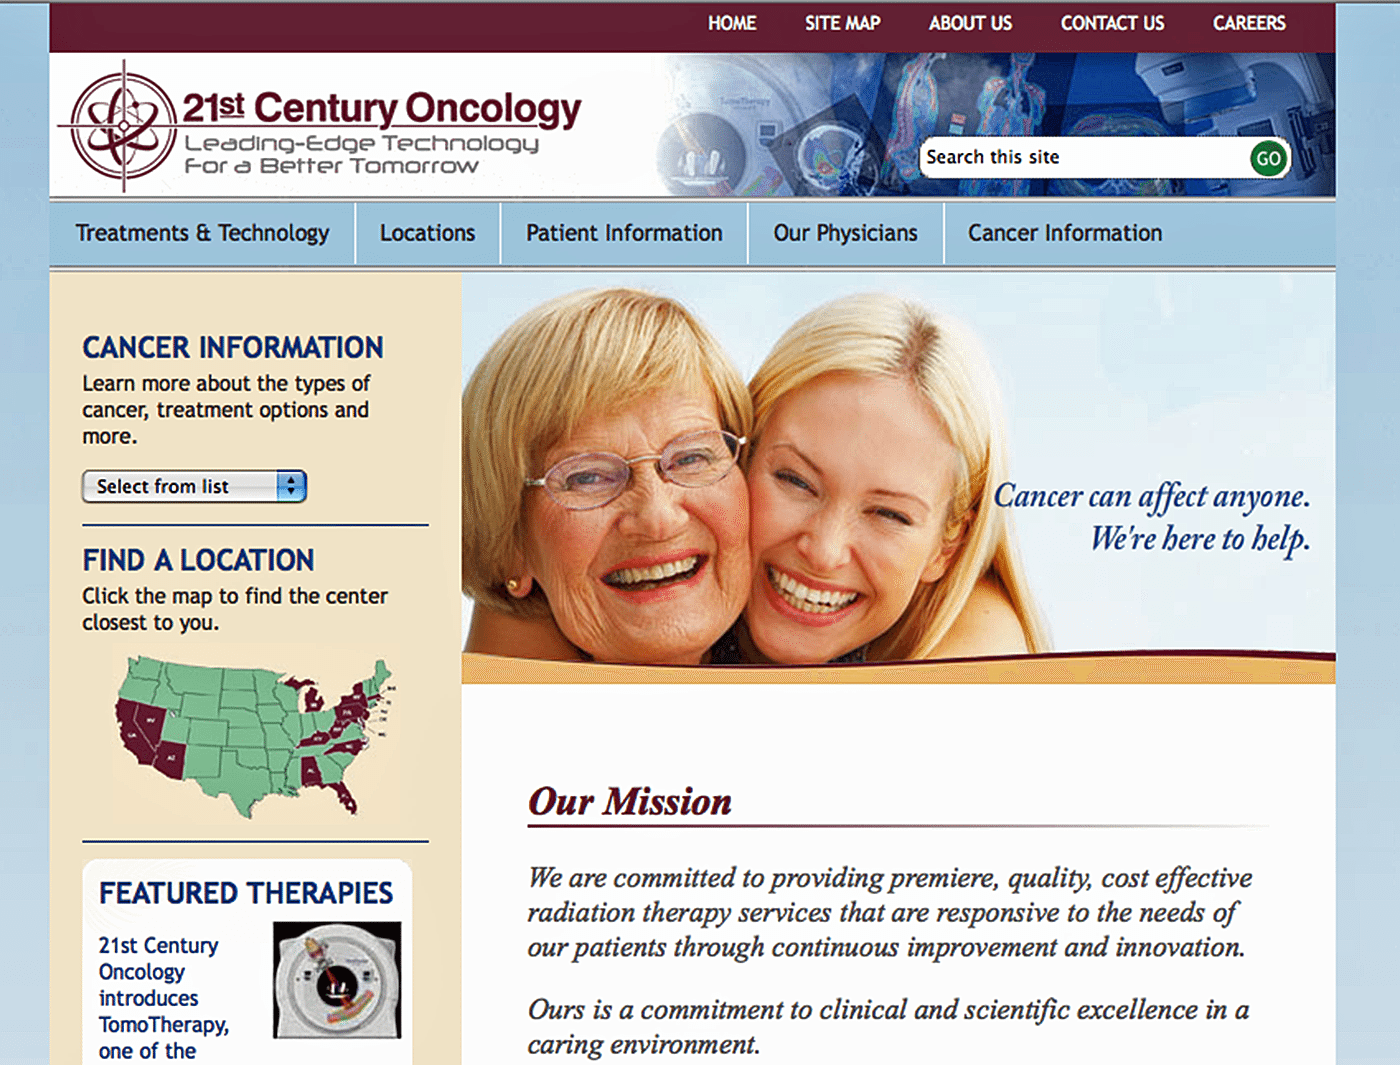 Healthcare Website Design Agency Creative | 21st Century Oncology